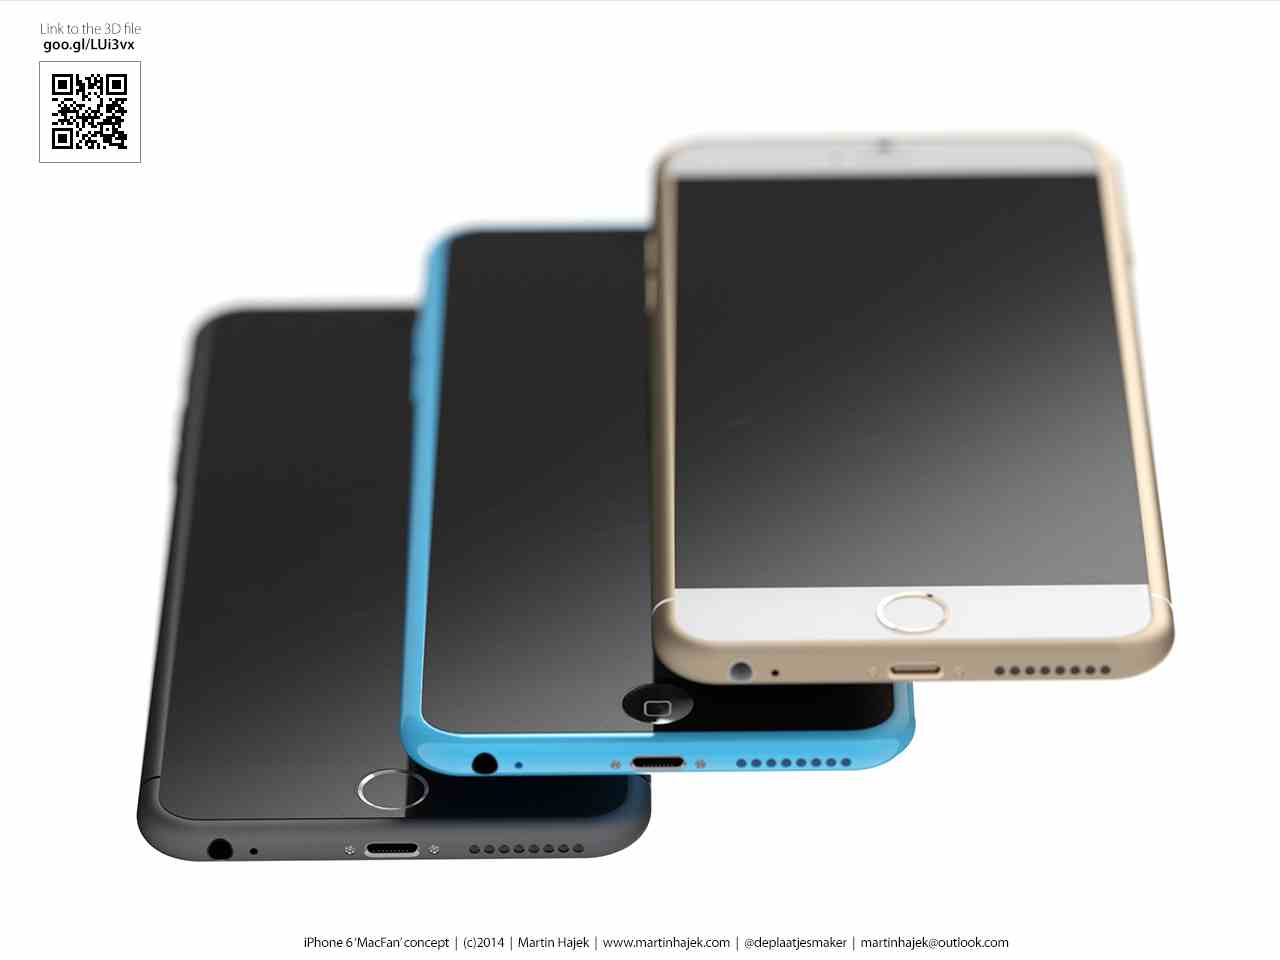 Apple-iPhone-6s-and-6c-concept (9)